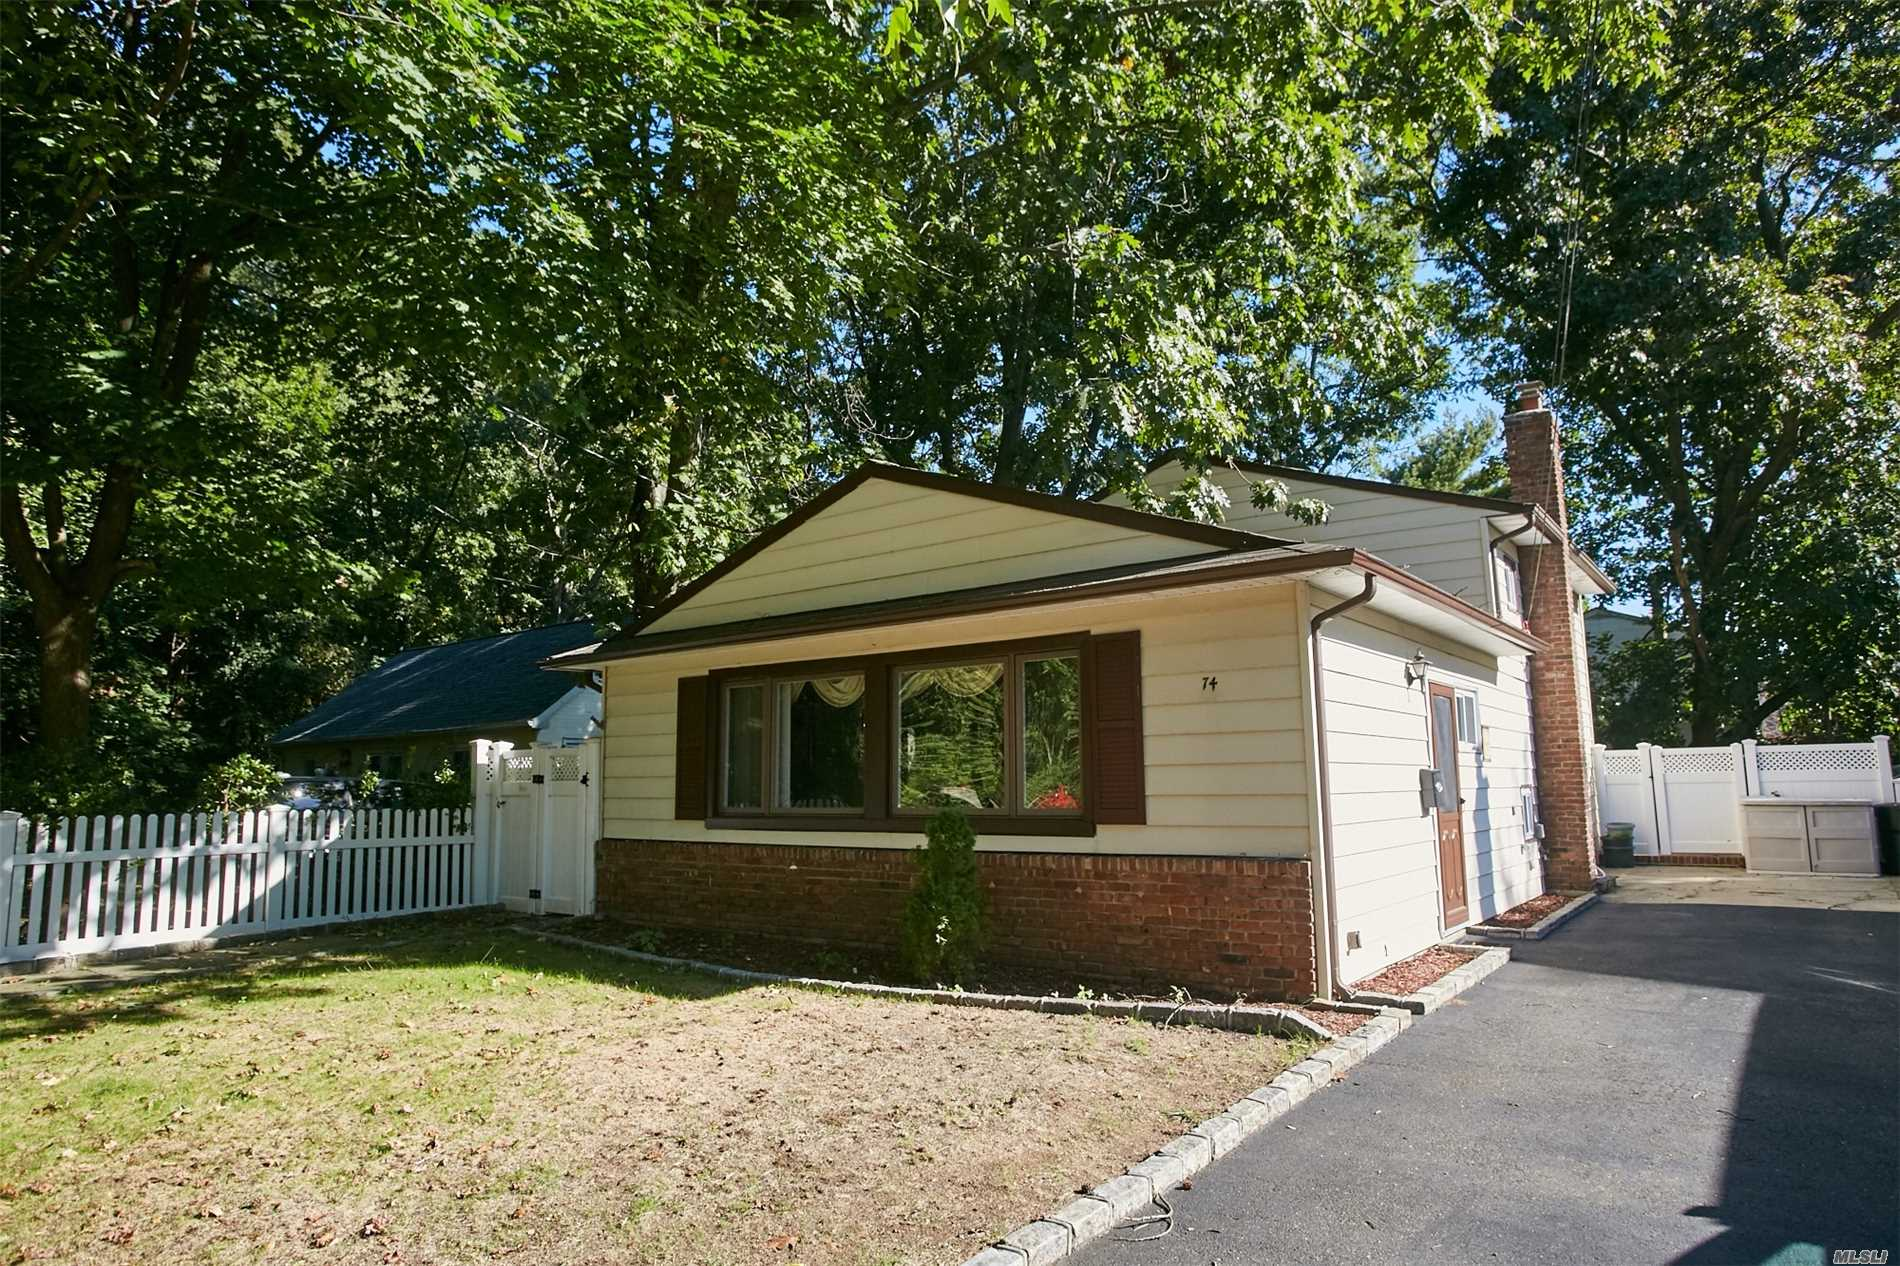 Nice Split Level House Located On A Quiet Dead End Street, Maintenance Free Backyard With Large Deck. Blocks Away From Community Pool, Park, Tennis And Shopping. Desirable Port Washington Top Rated School District, Comfortable 35 Minute Lirr Commute To Nyc. Great Affordable Property For Starter & Investor.